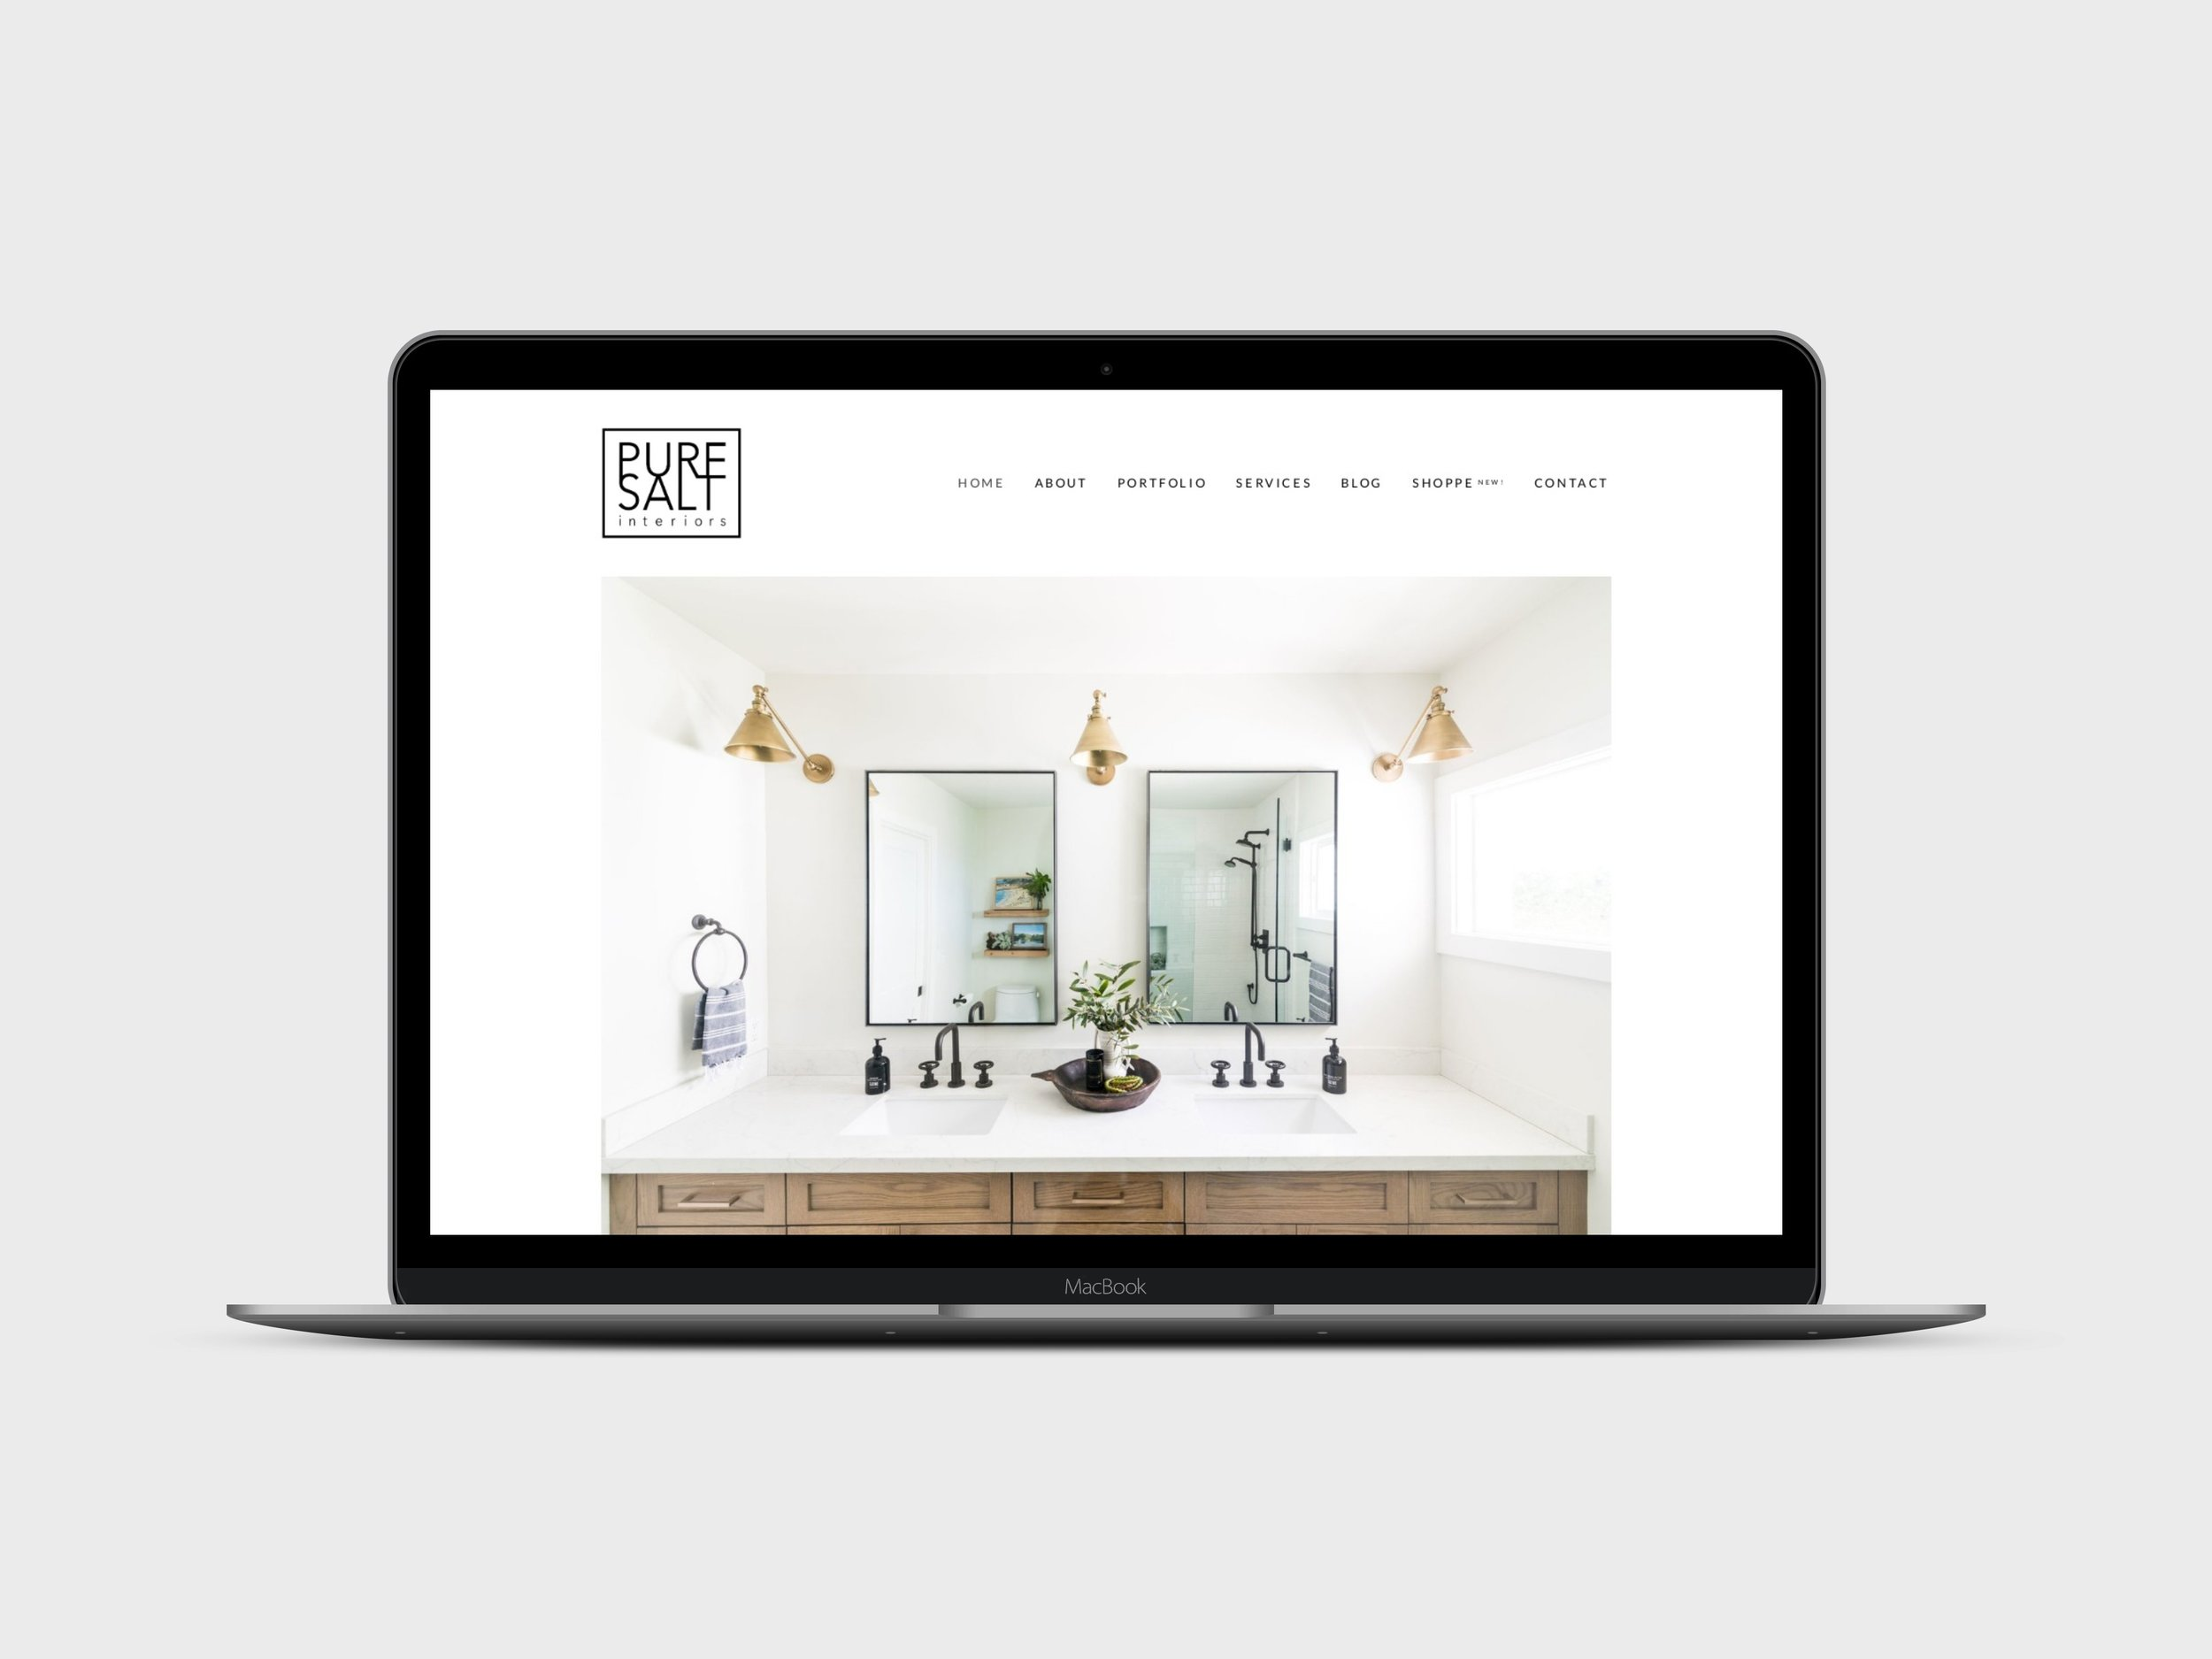 Pure Salt Interiors - Pure Salt Interiors is a full-service interior design agency located in Laguna Beach, CA. We designed a website and e-commerce store for their popular and growing line of products.